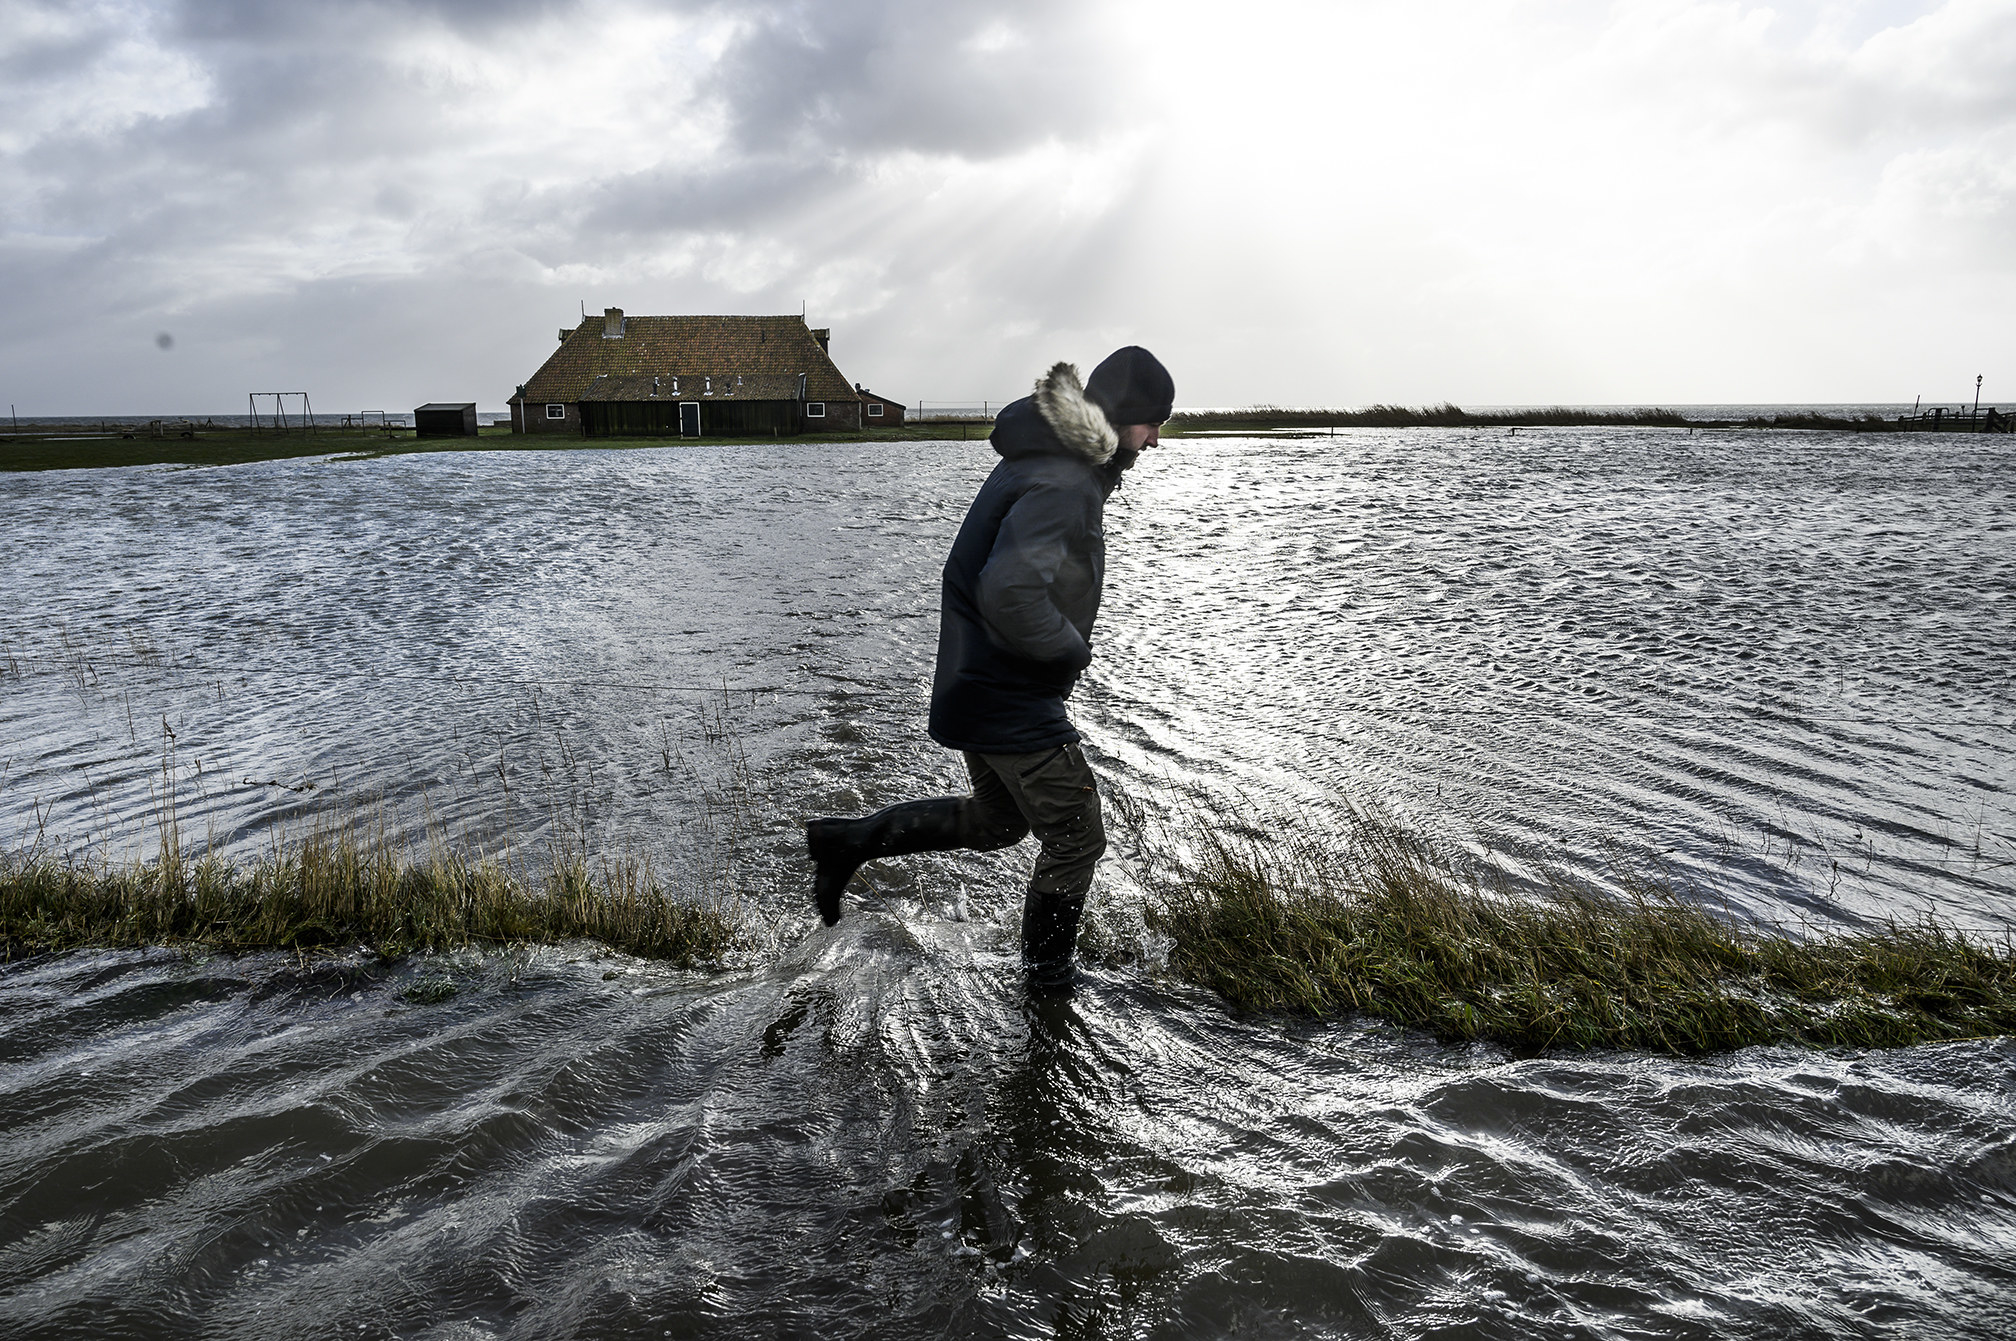 A person walking in deep water with a house off in the distance